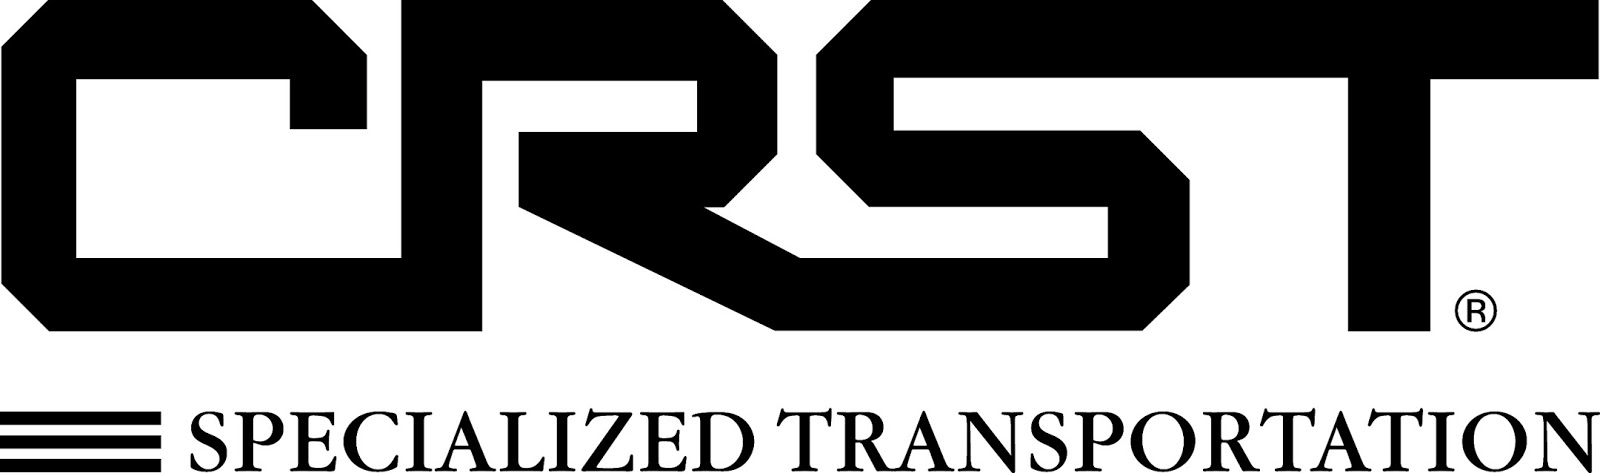 Specialized Transportation, Inc.